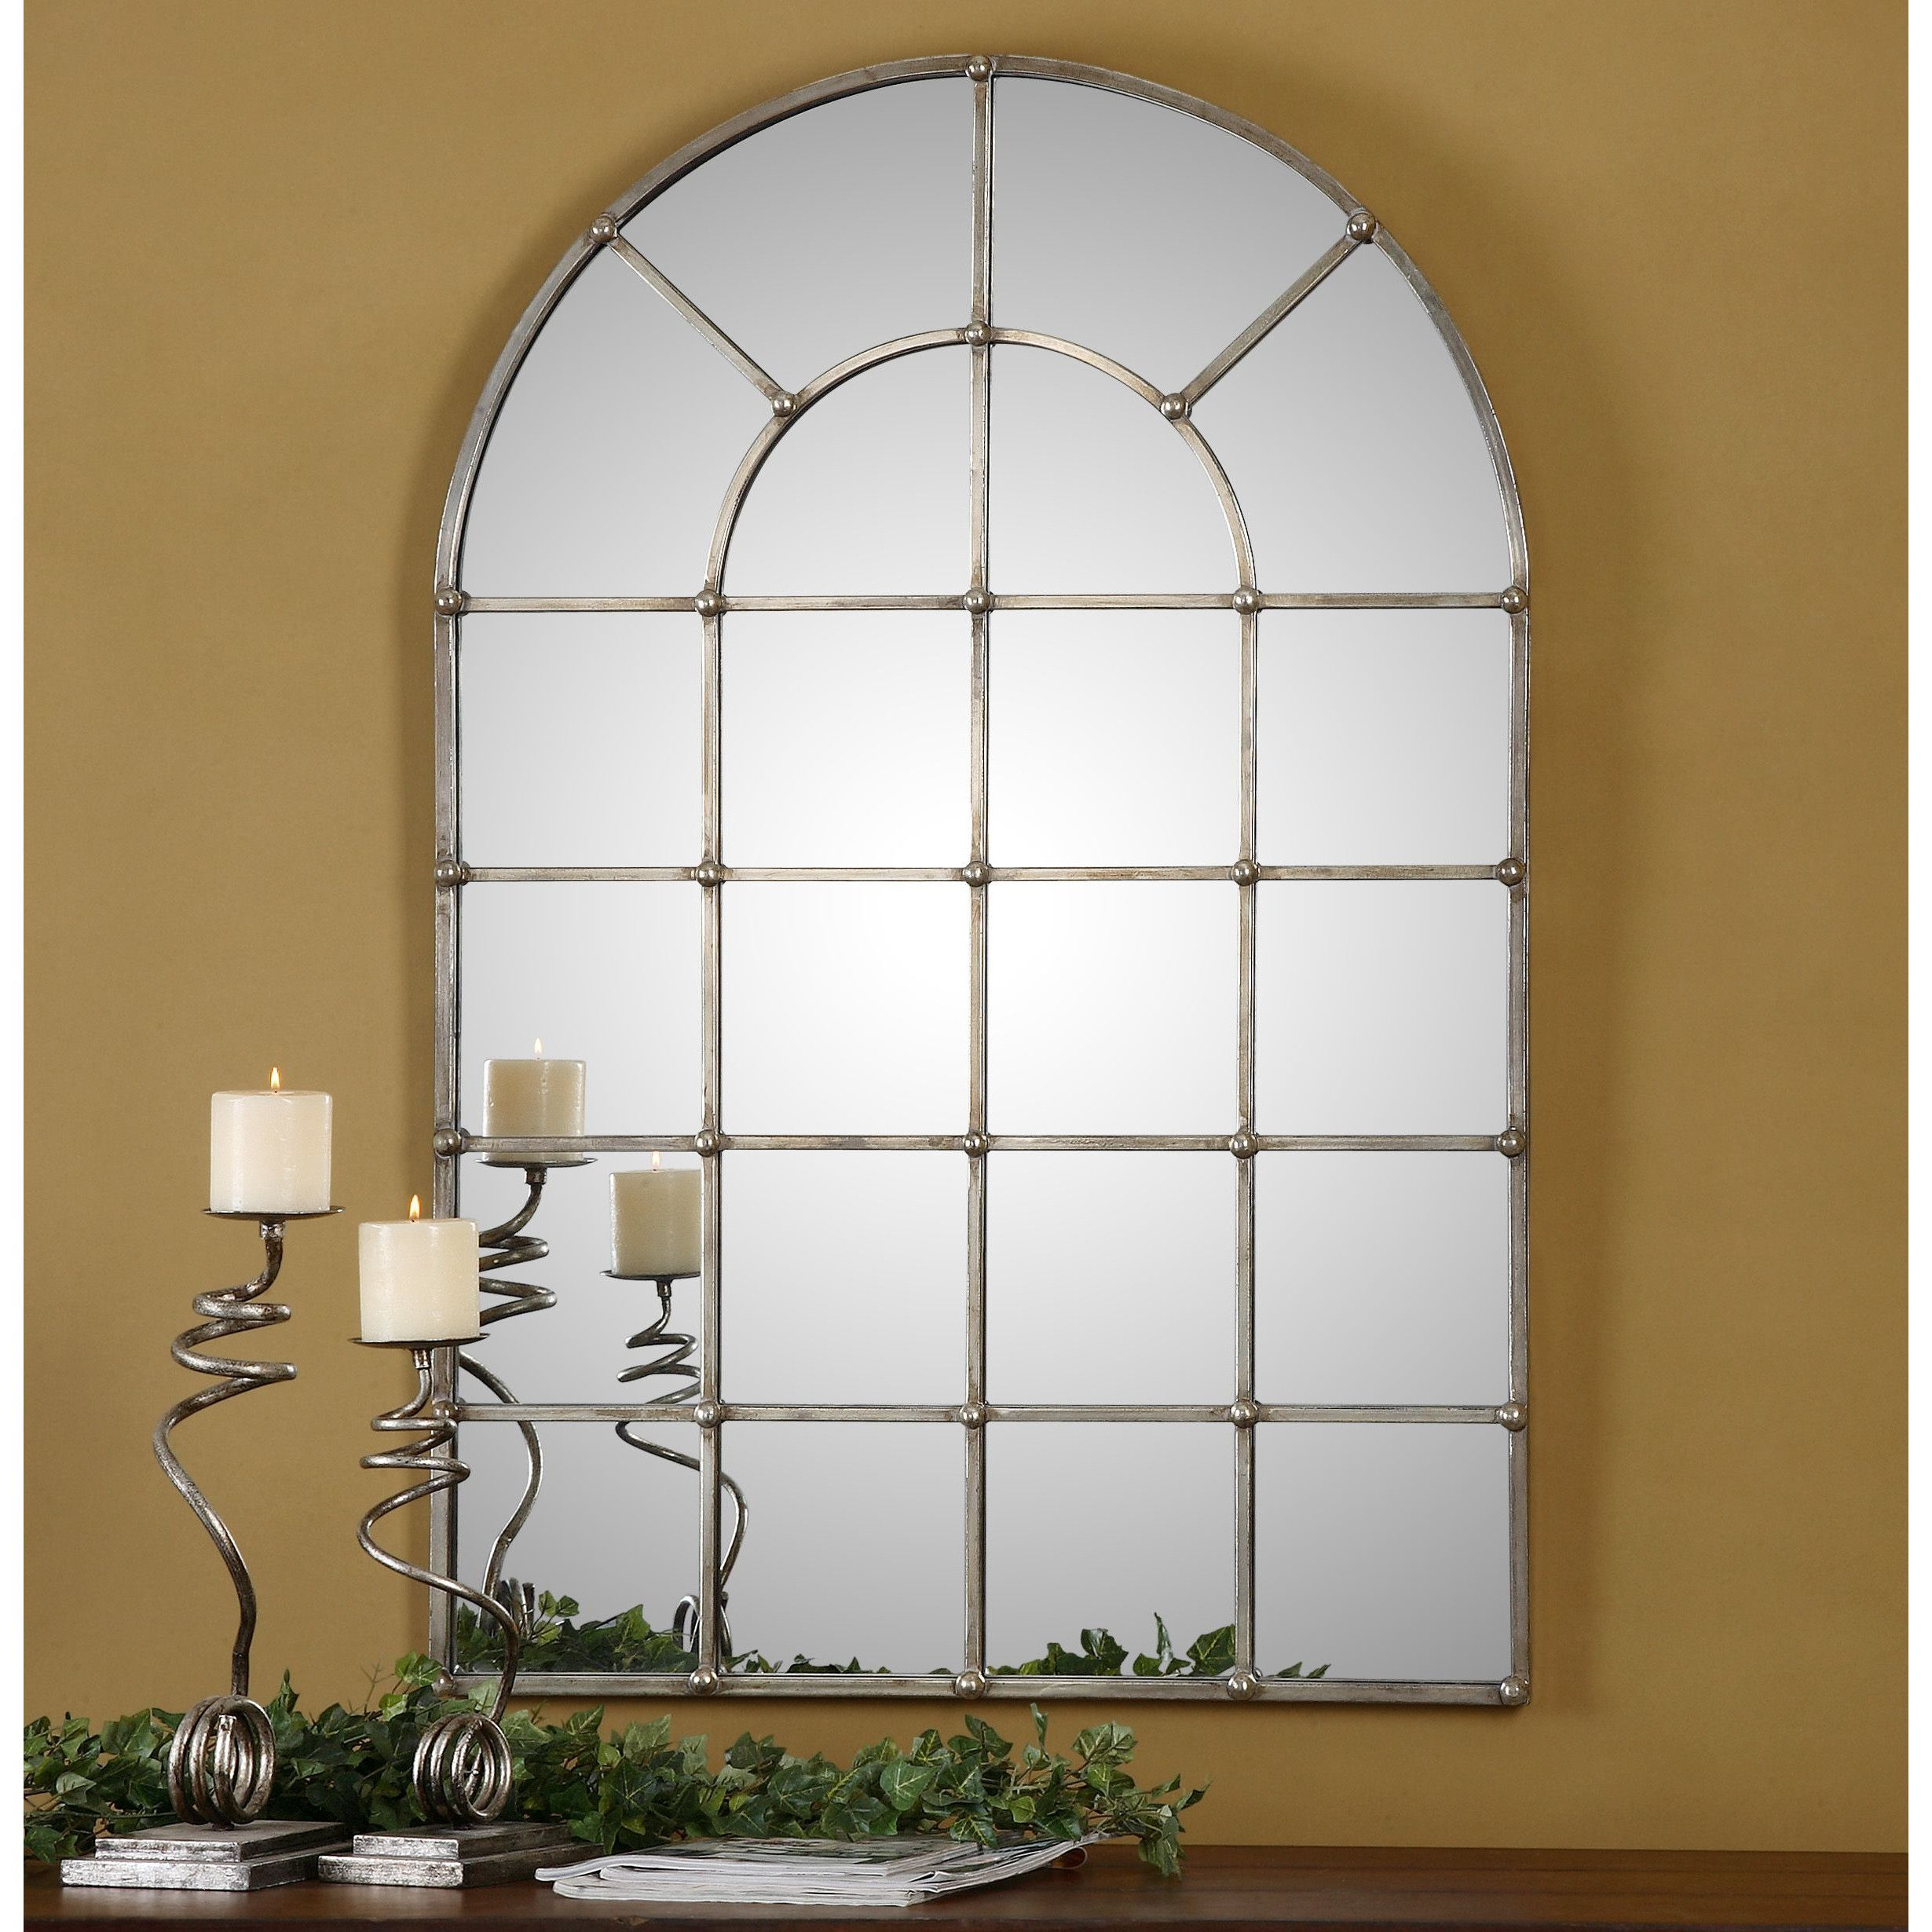 Wayfair Wall Decor uttermost barwell arch window mirror & reviews | wayfair | stacy